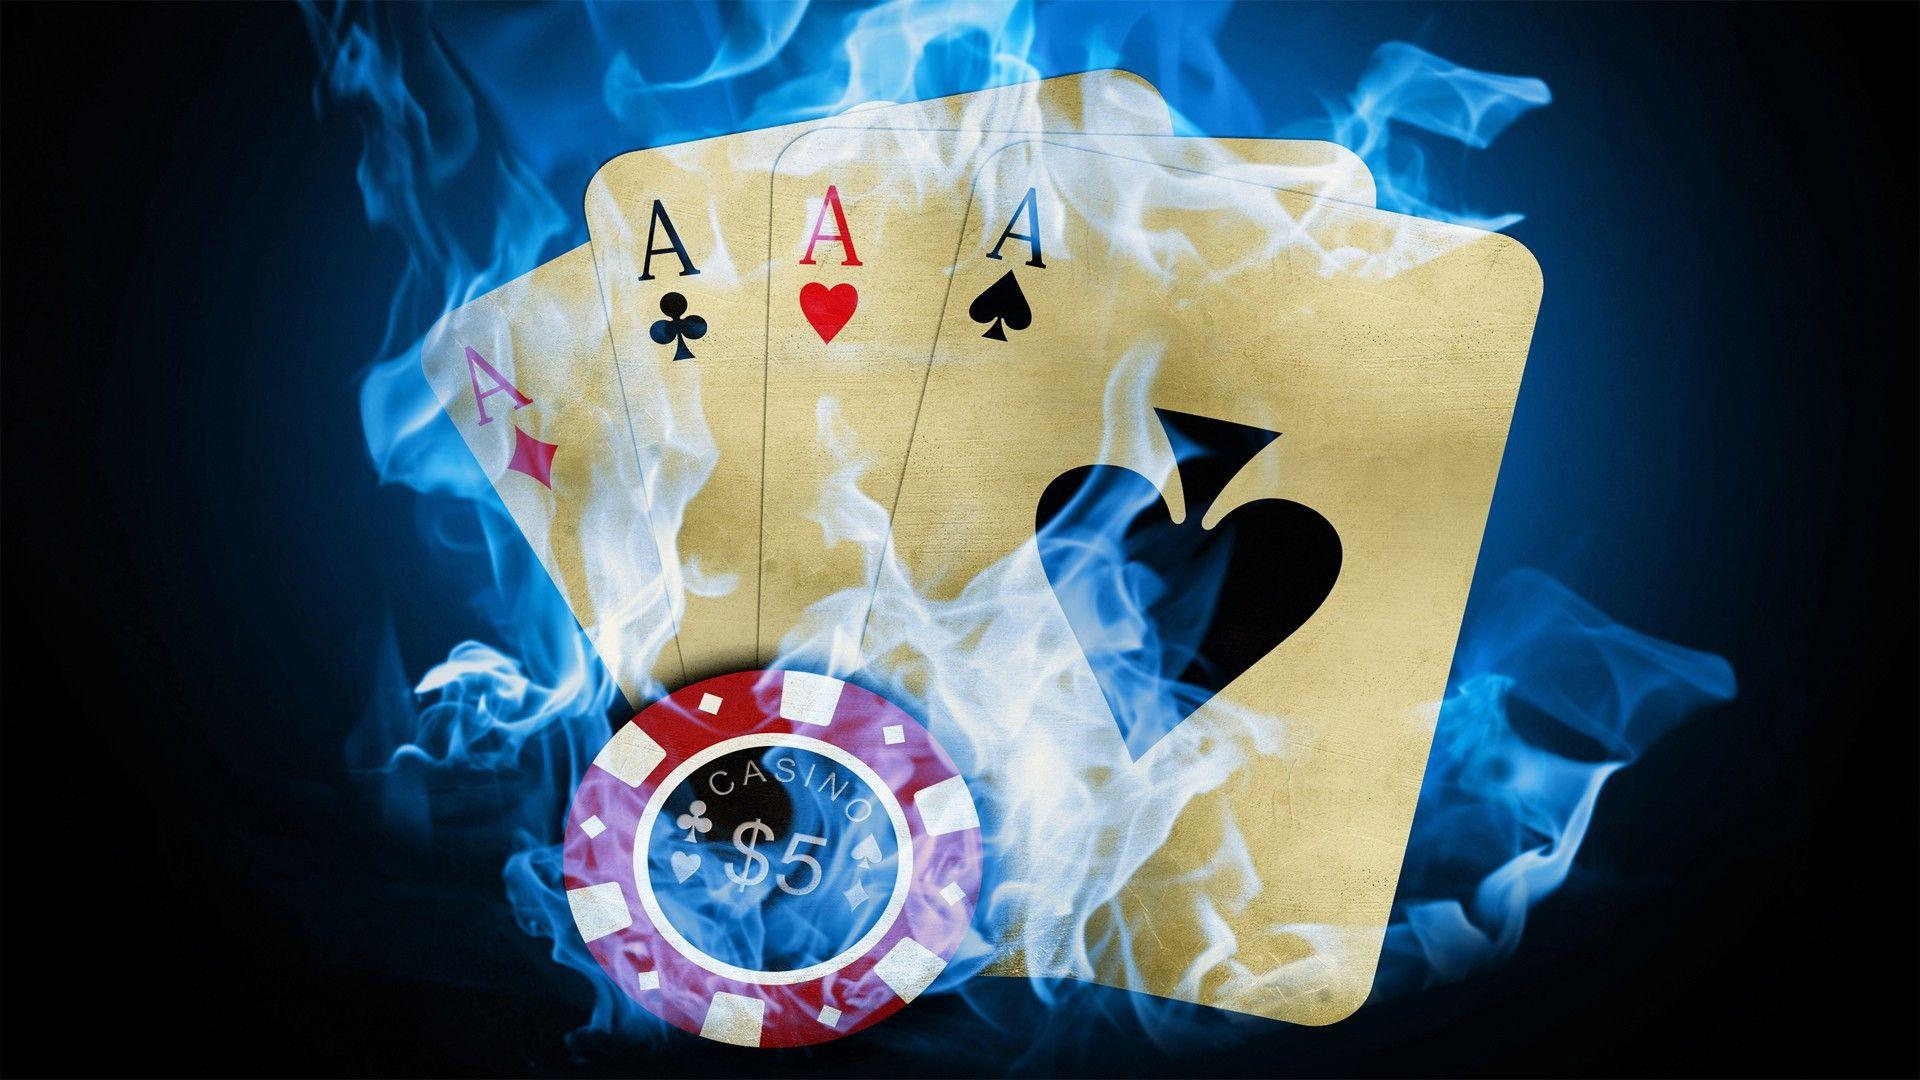 Soiled Information About Casino Revealed